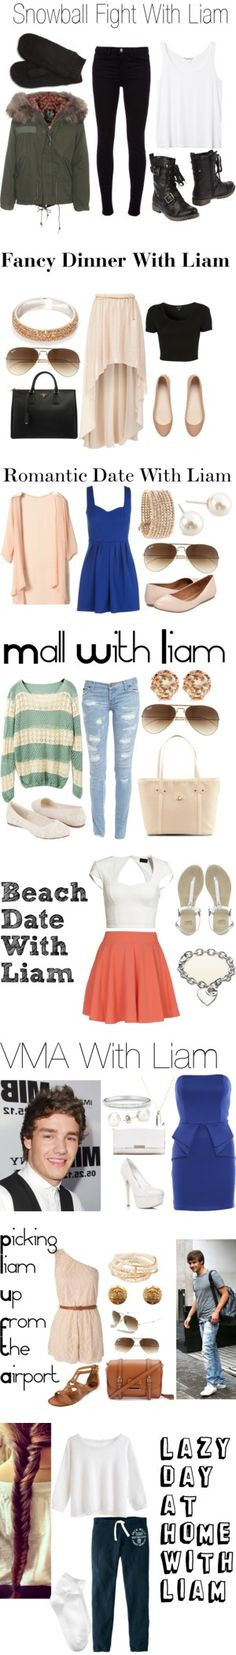 """Directioner Outfits - Liam Payne"" by bananaaaa ❤ liked on Polyvore"